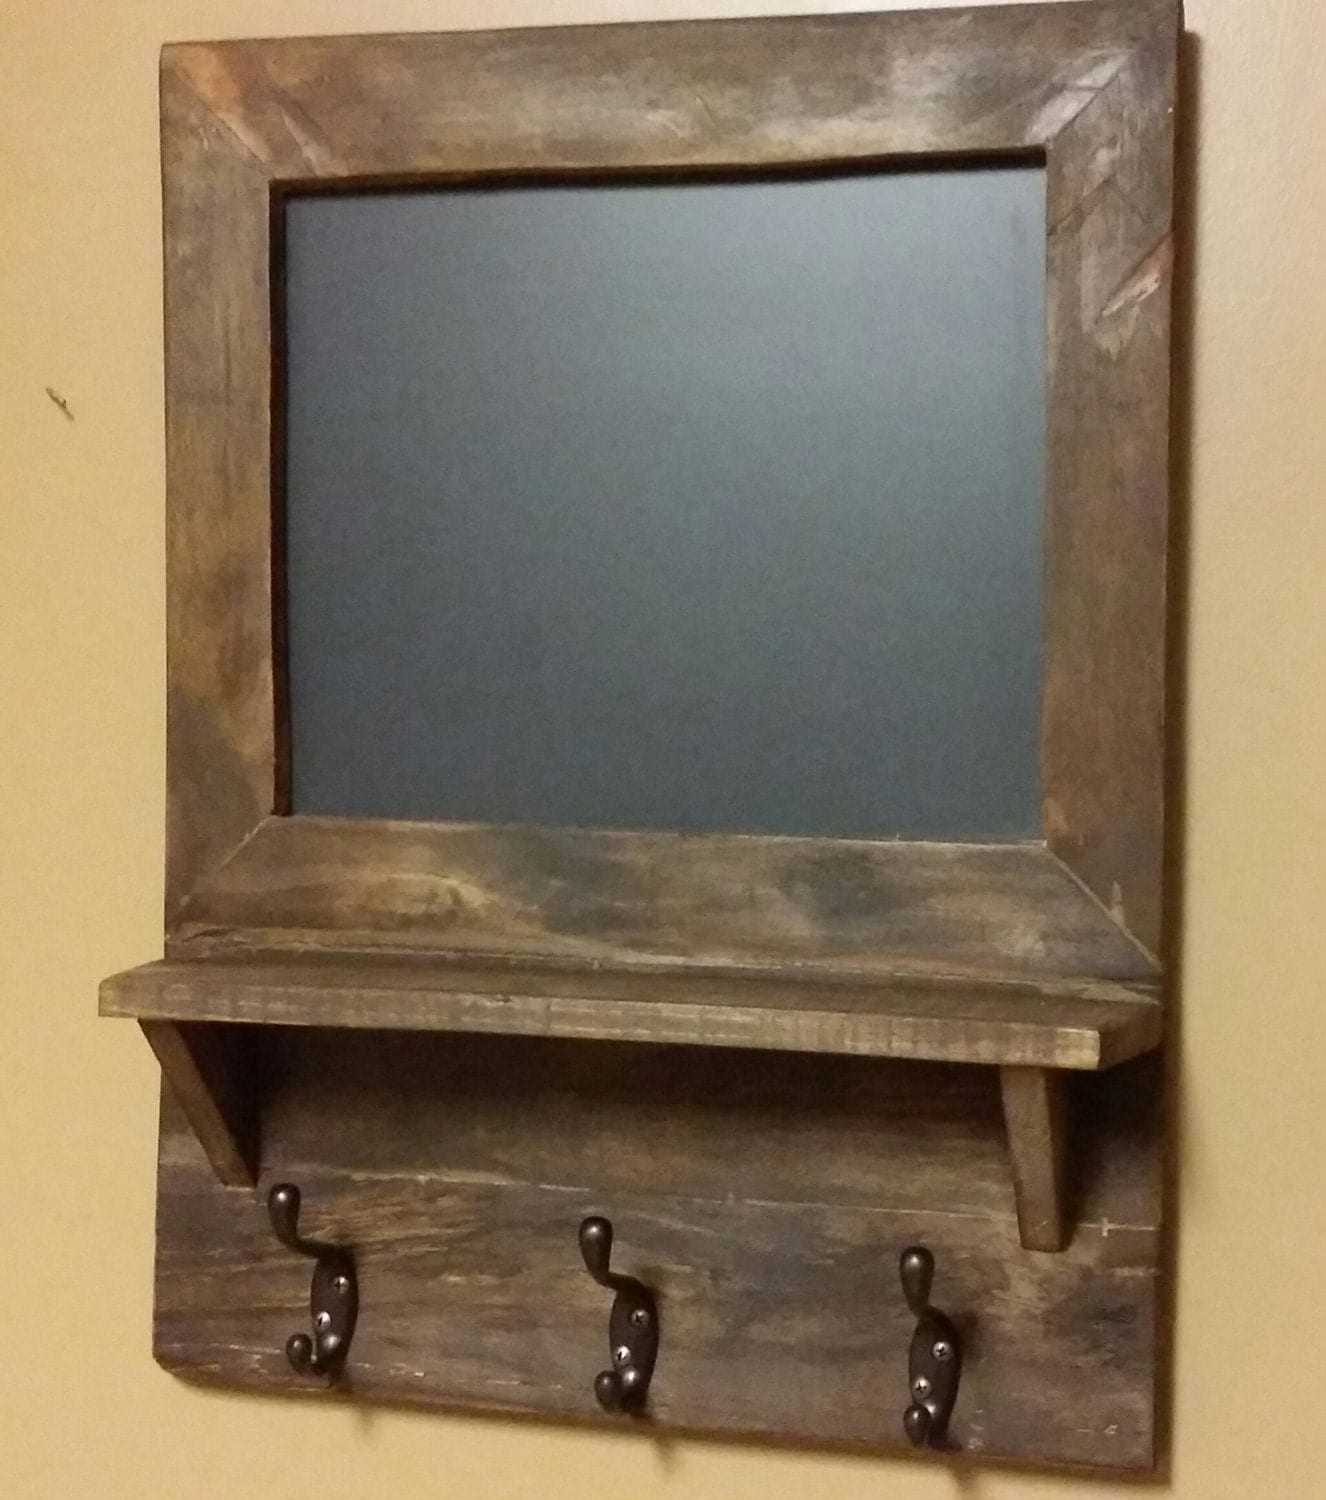 Rustic Decor Chalkboard Shelf Coat Rack Hall Shelf Country